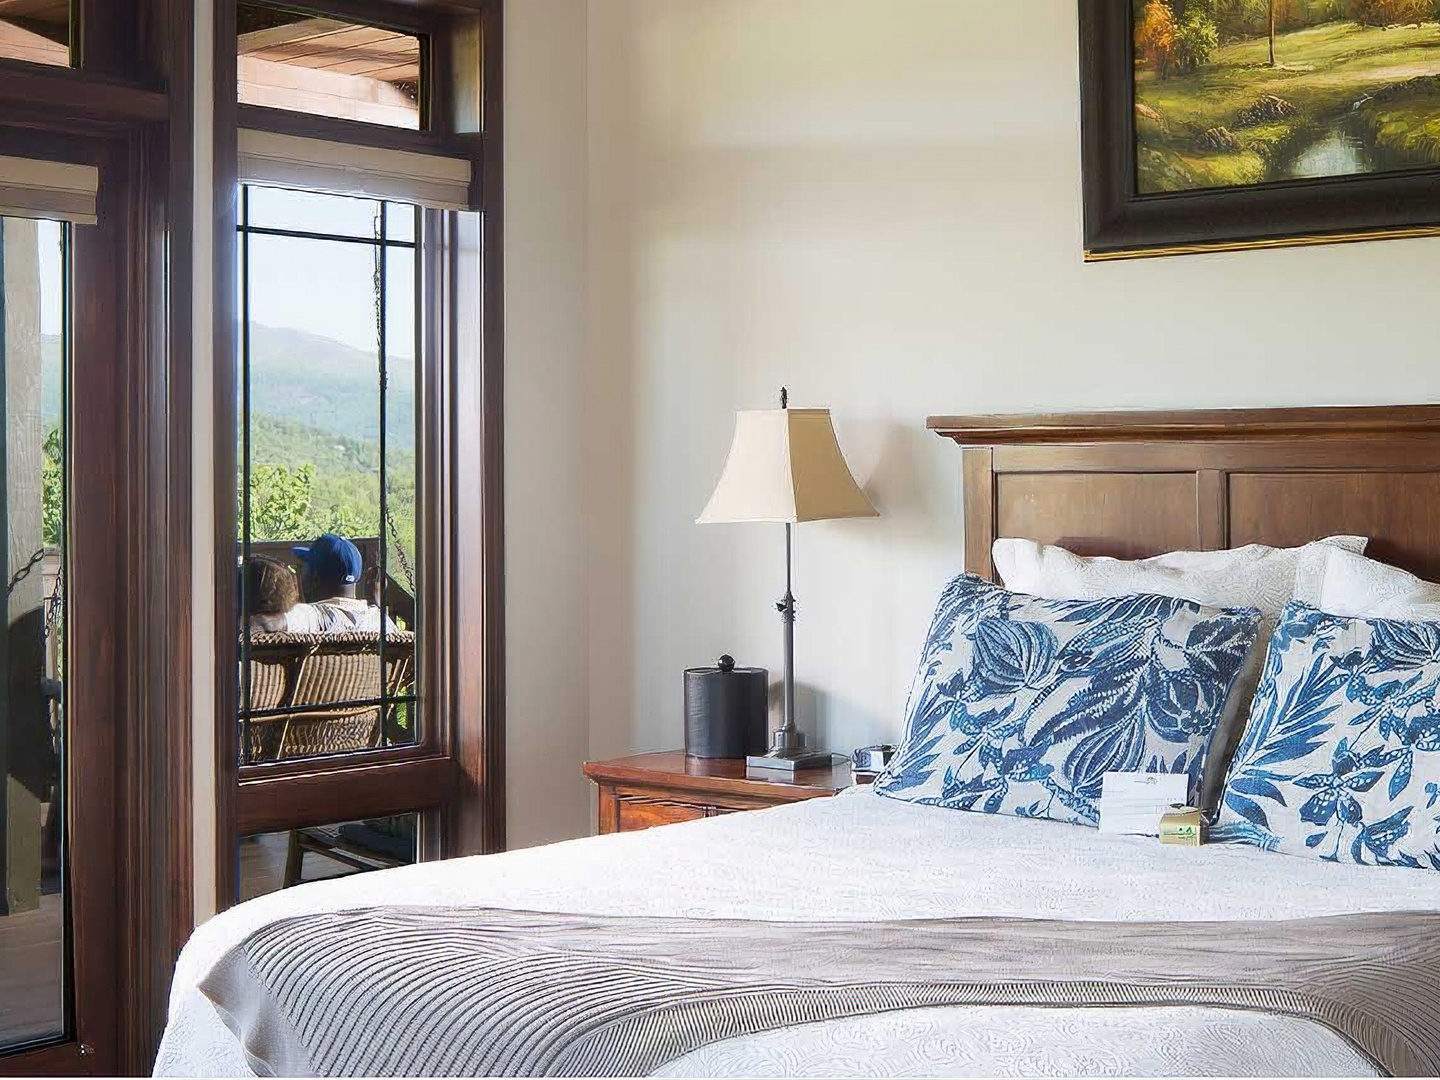 A bedroom with a bed and a window at Lucille's Mountain Top Inn & Spa.